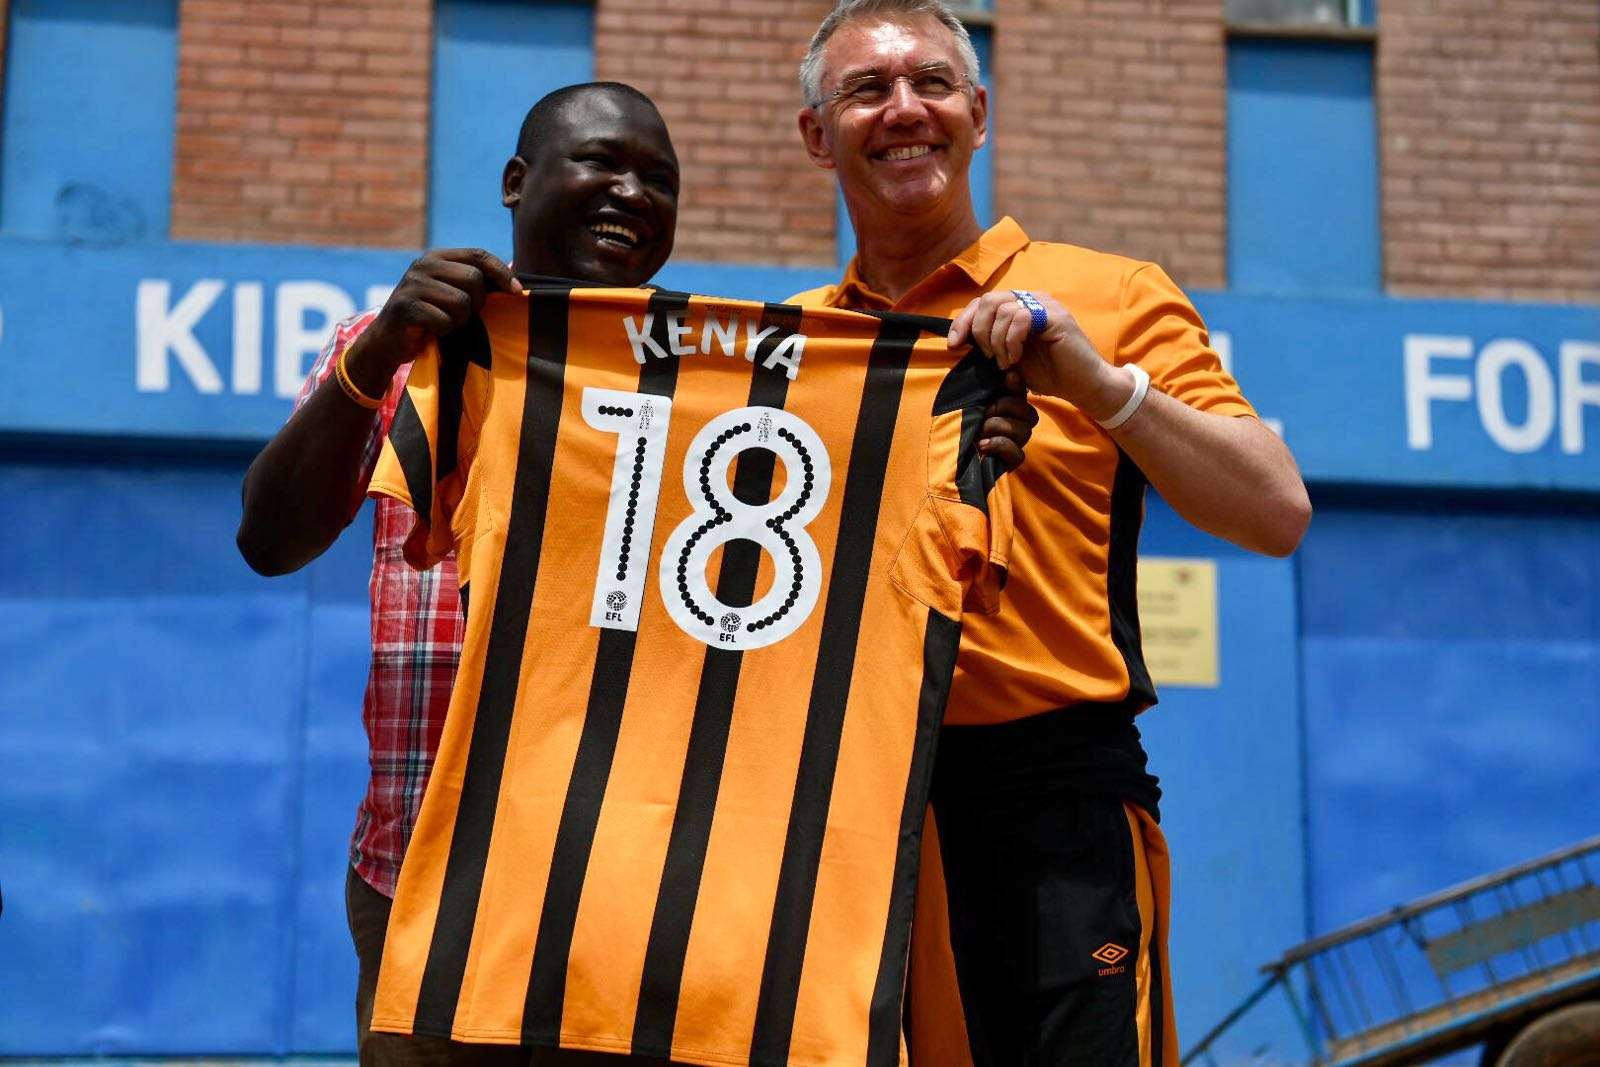 Hull City FC manager, Nigel Adkins present a branded shirt to Shofco FC founder, Kennedy Odede, when the team visited sprawling Kibera slum in Nairobi, Kenya, in May, 2018.PHOTO/SPN